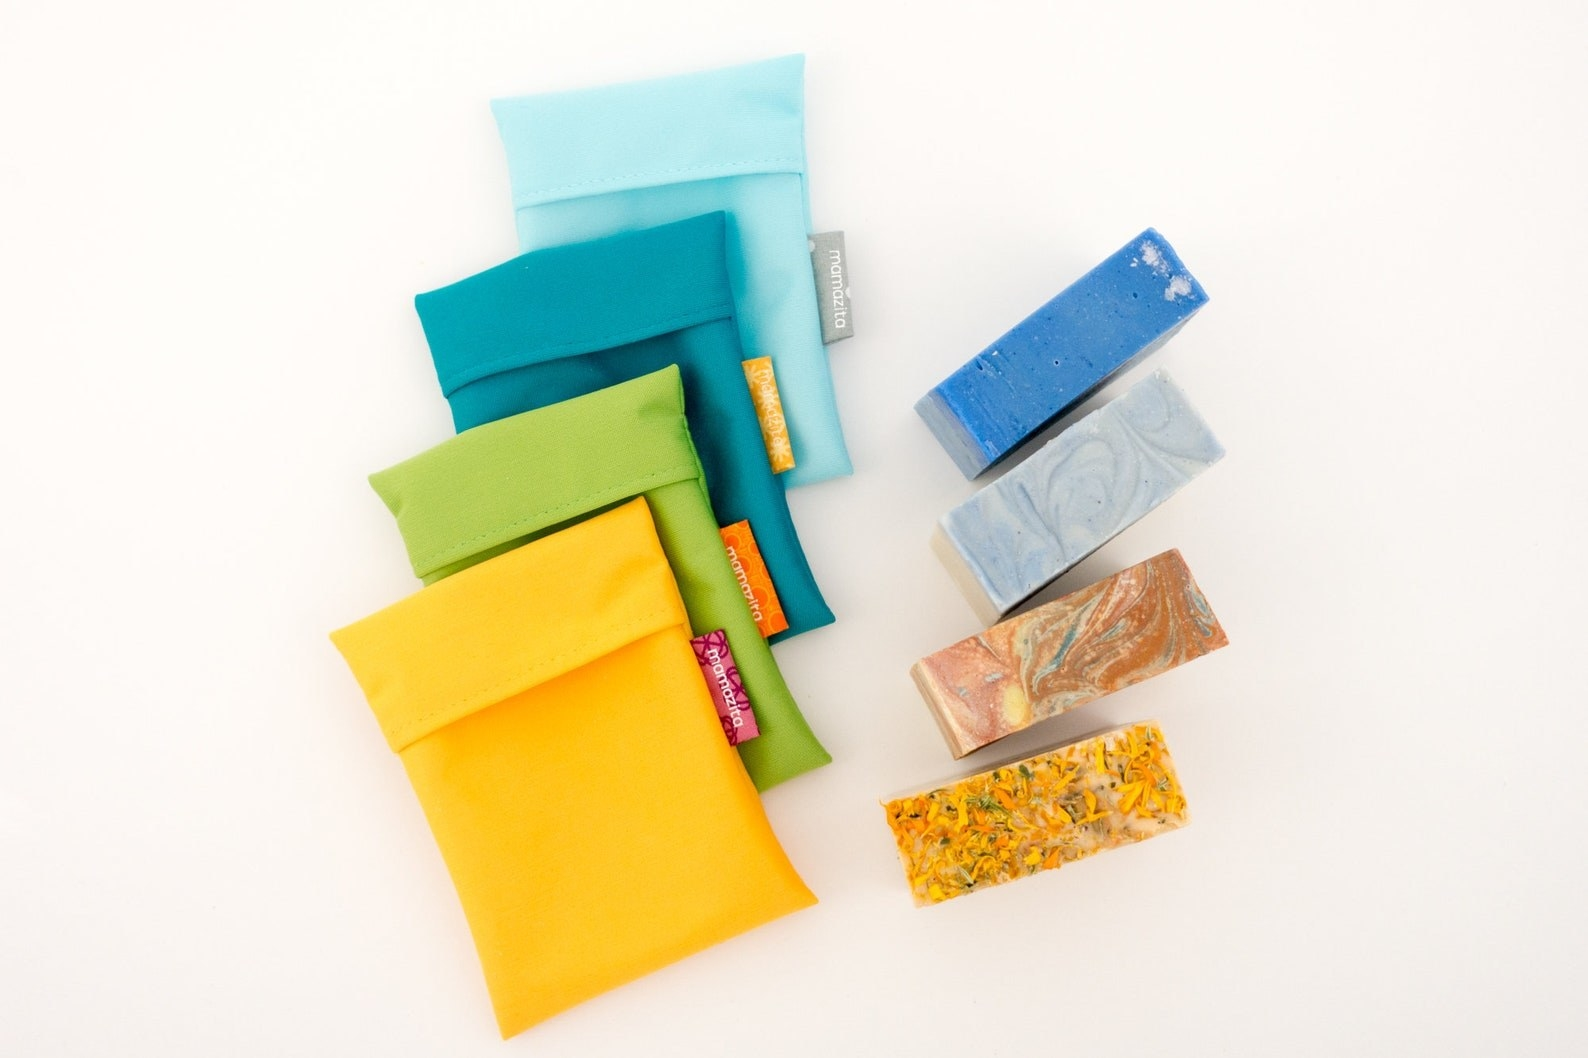 Fabric soap holders in yellow, green, and blue